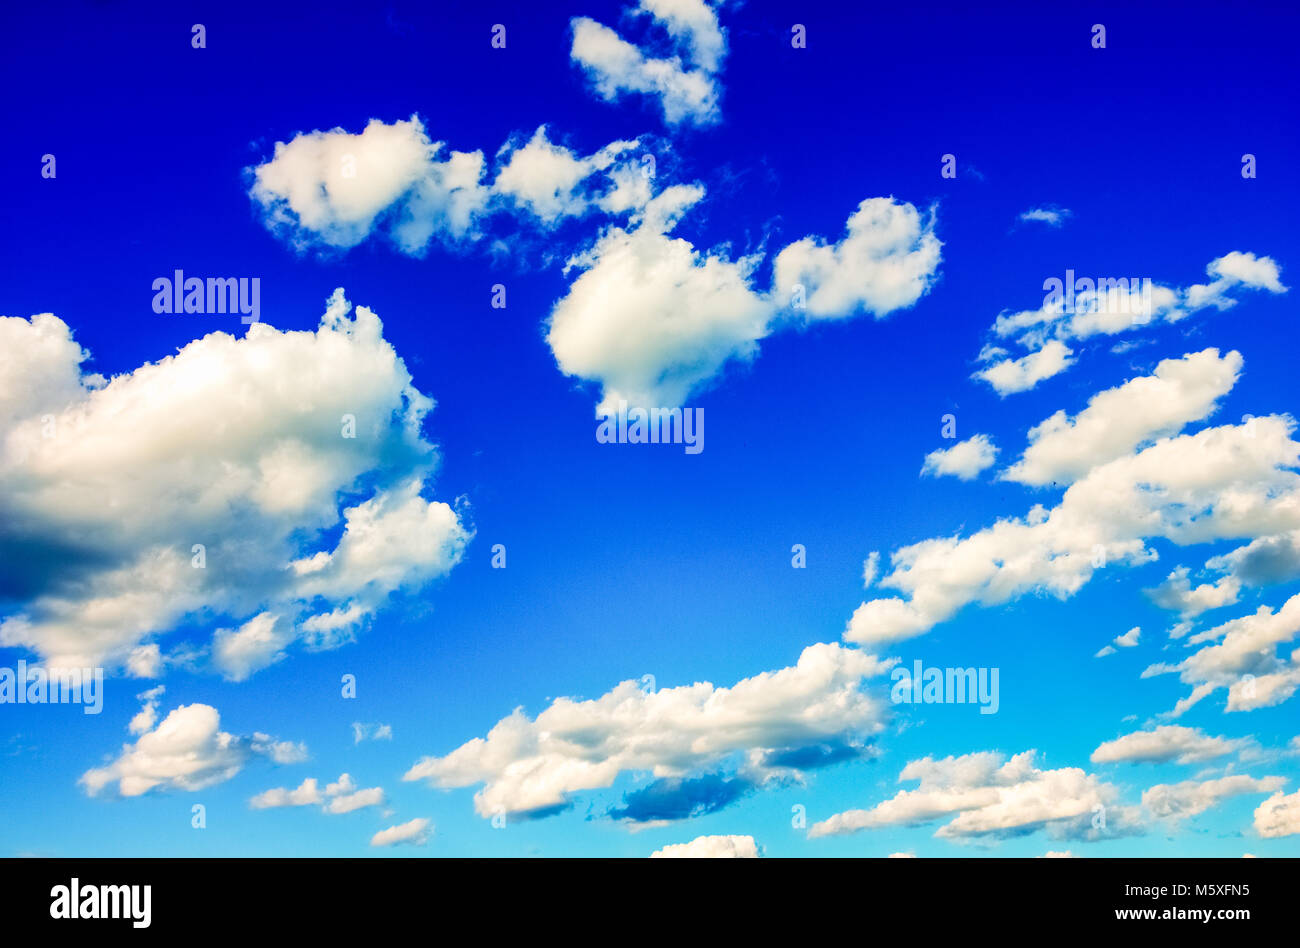 Skyscape with cumulus clouds in the blue sky - Stock Image